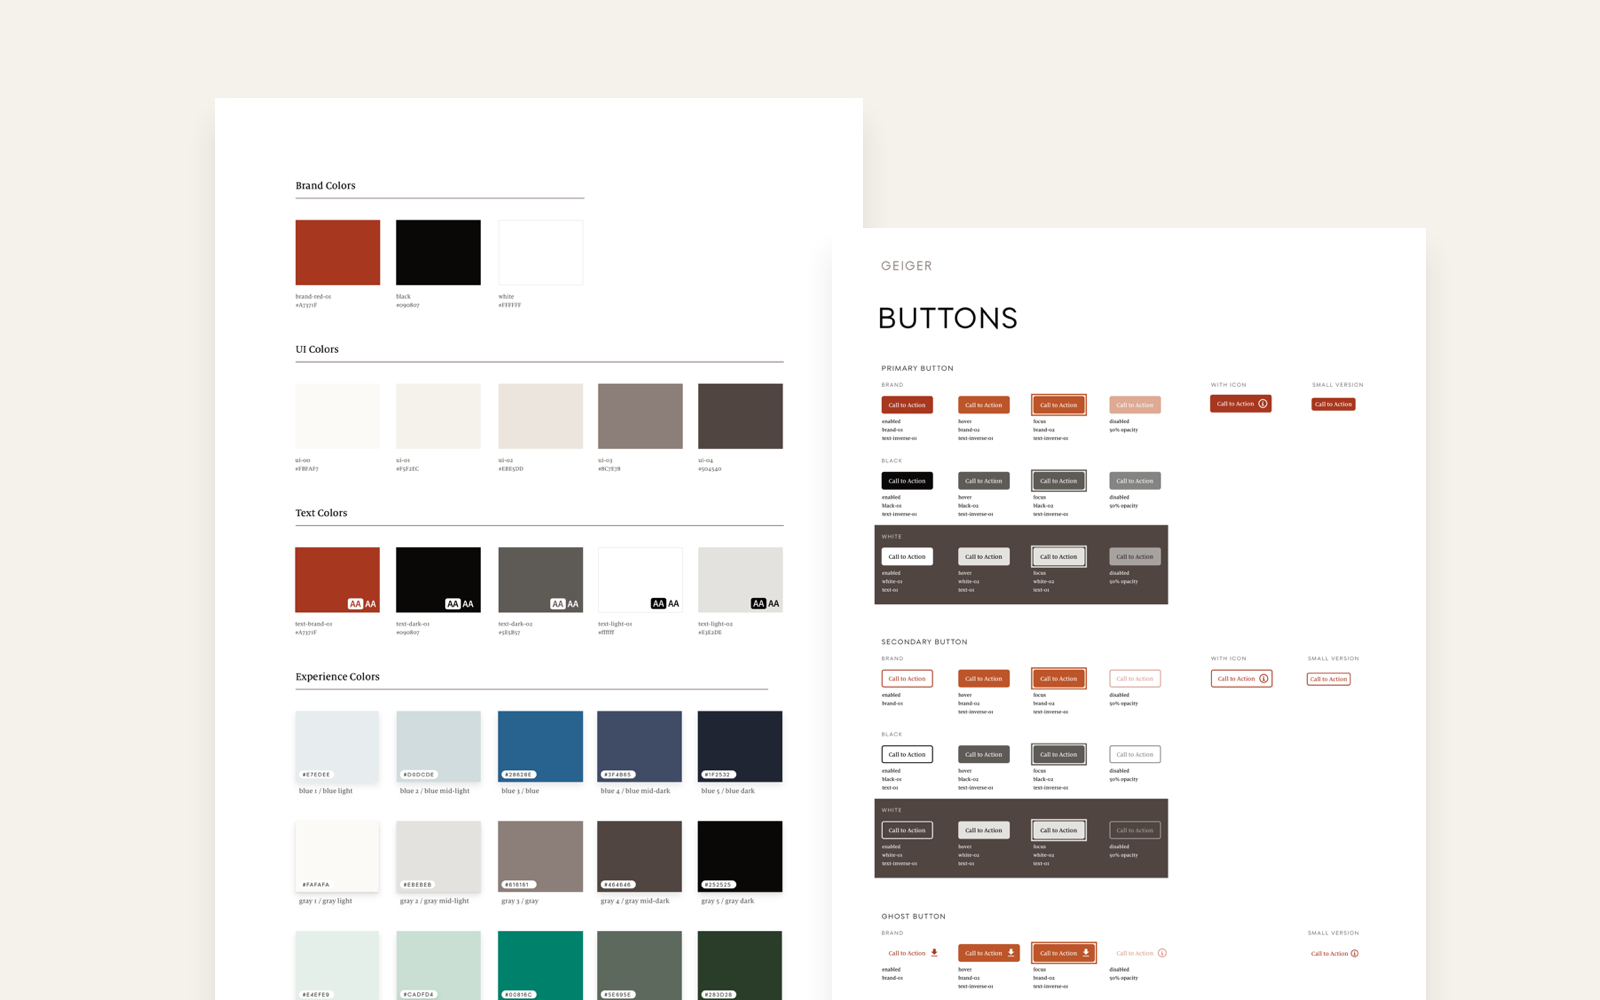 Style Guide - We created a Geiger specific style guide derived from the Herman Miller Design System and executed on the shared AEM platform for Herman Miller and Geiger.